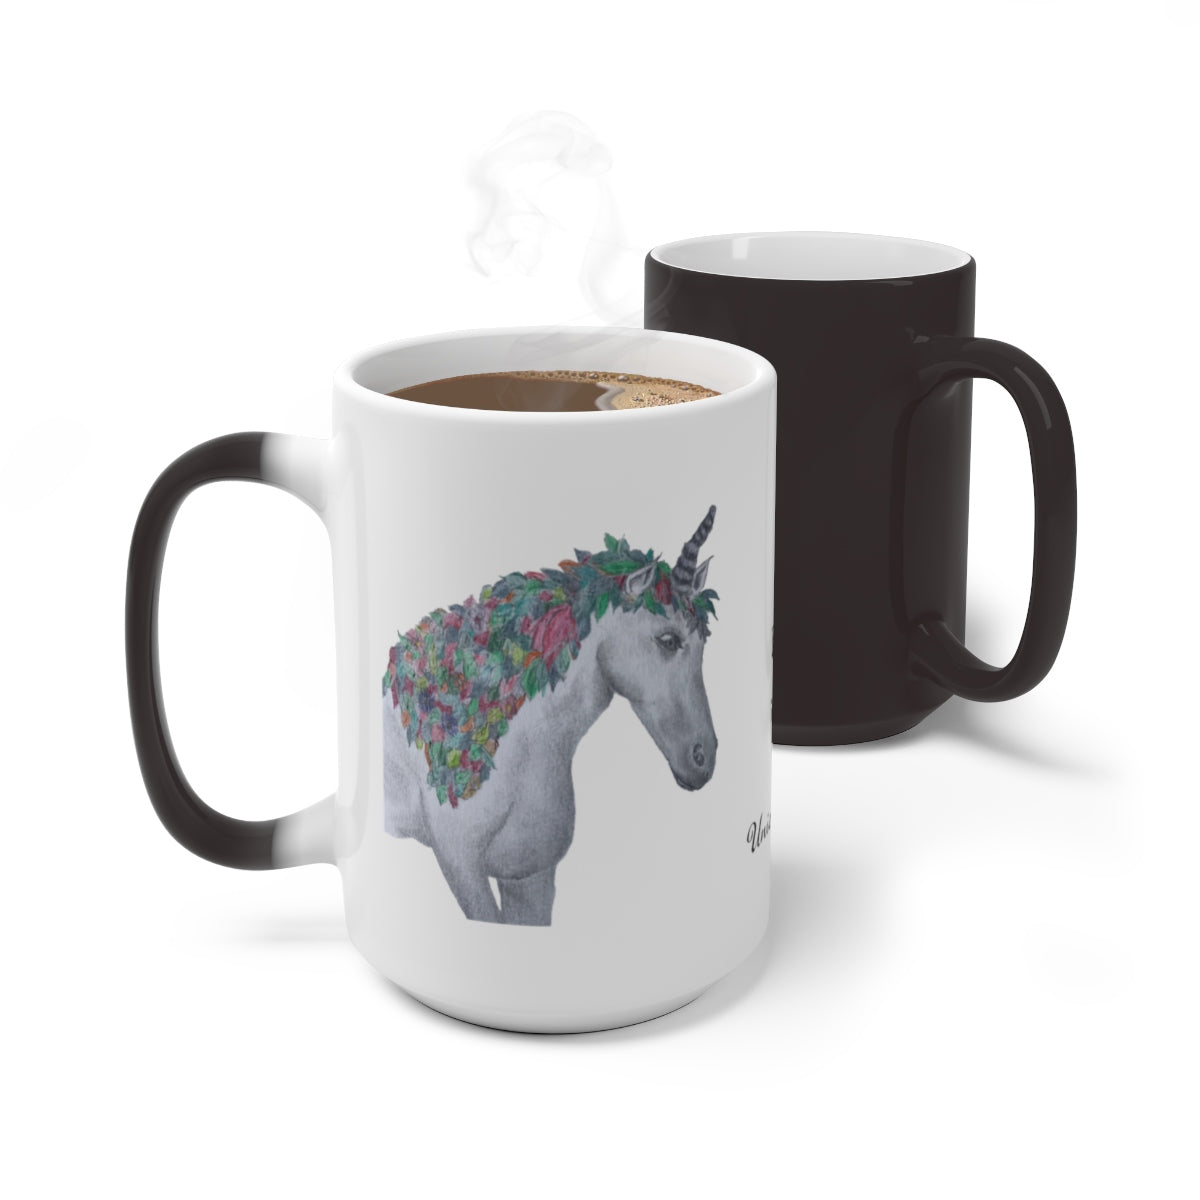 Color Changing Mug featuring the Fall Unicorn at Moose Pond - Unicorn Square